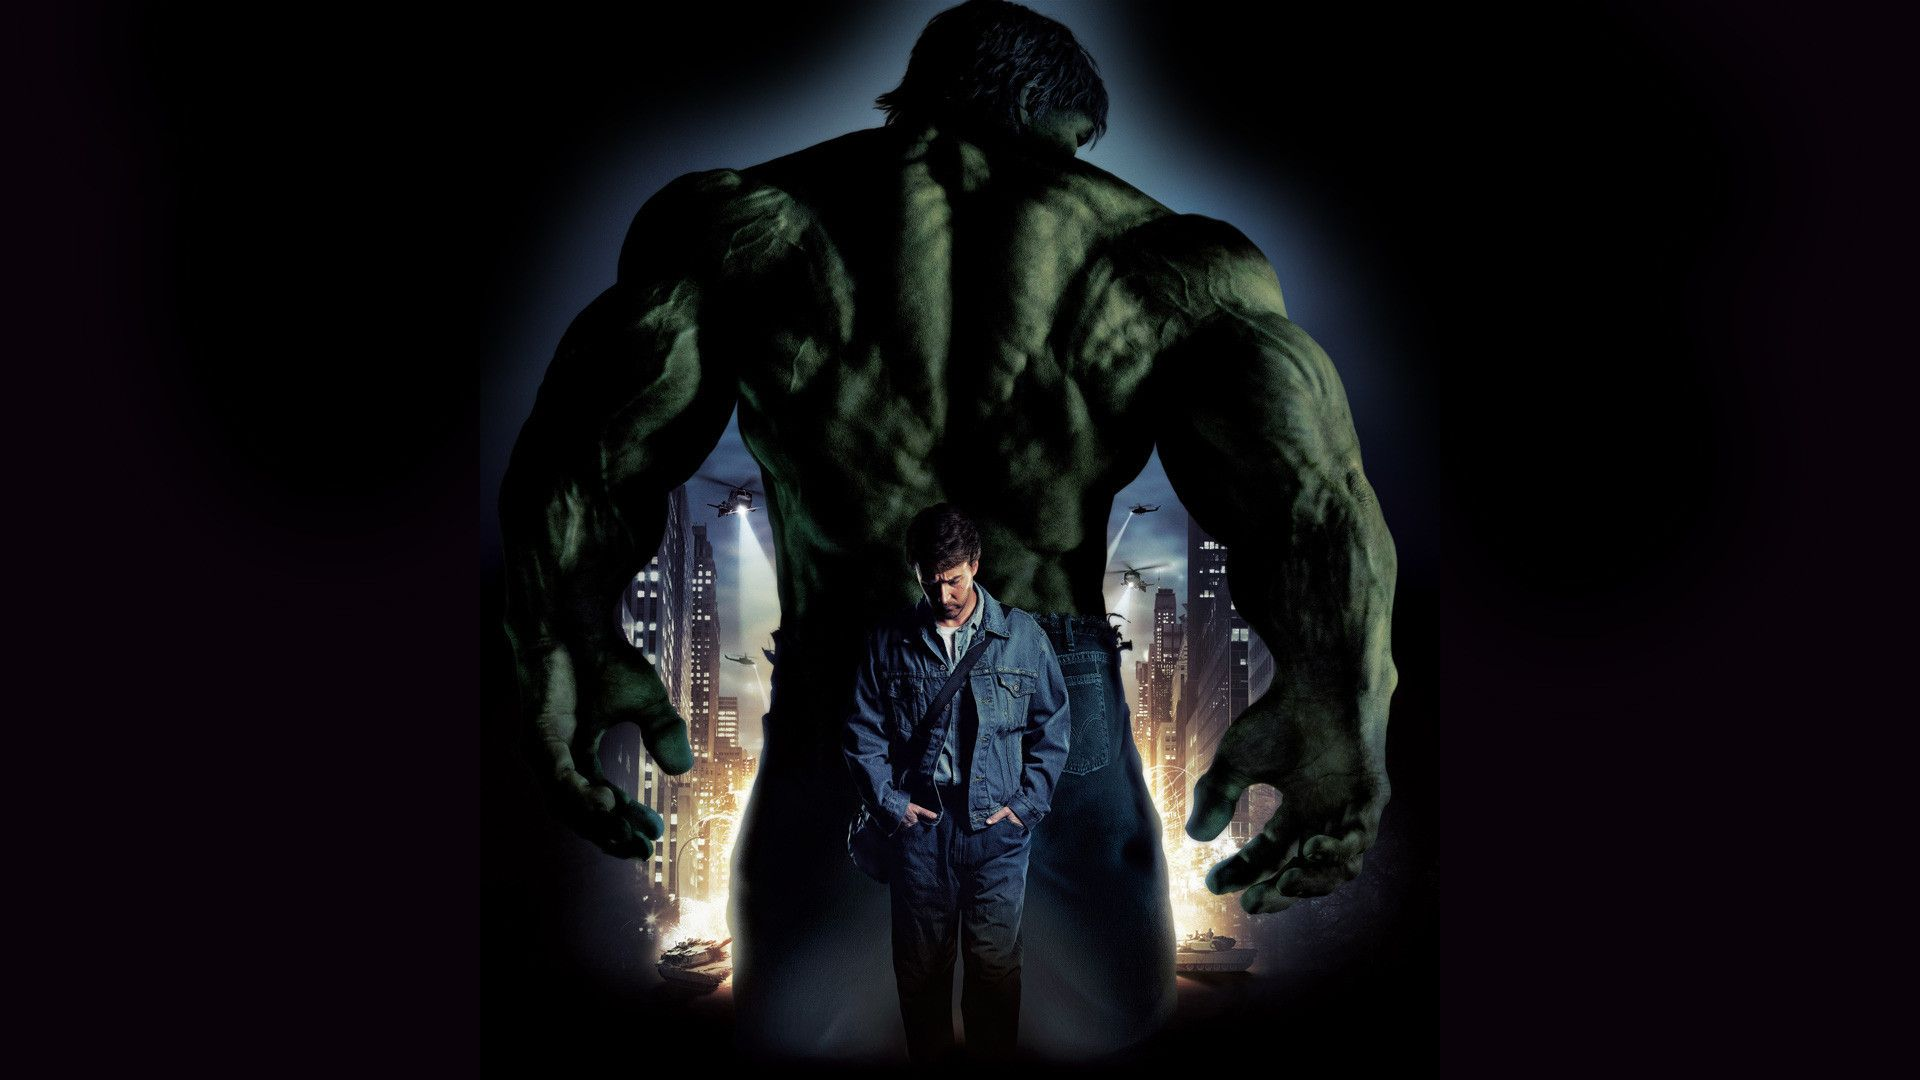 Hulk Laptop Wallpapers   Top Hulk Laptop Backgrounds 1920x1080